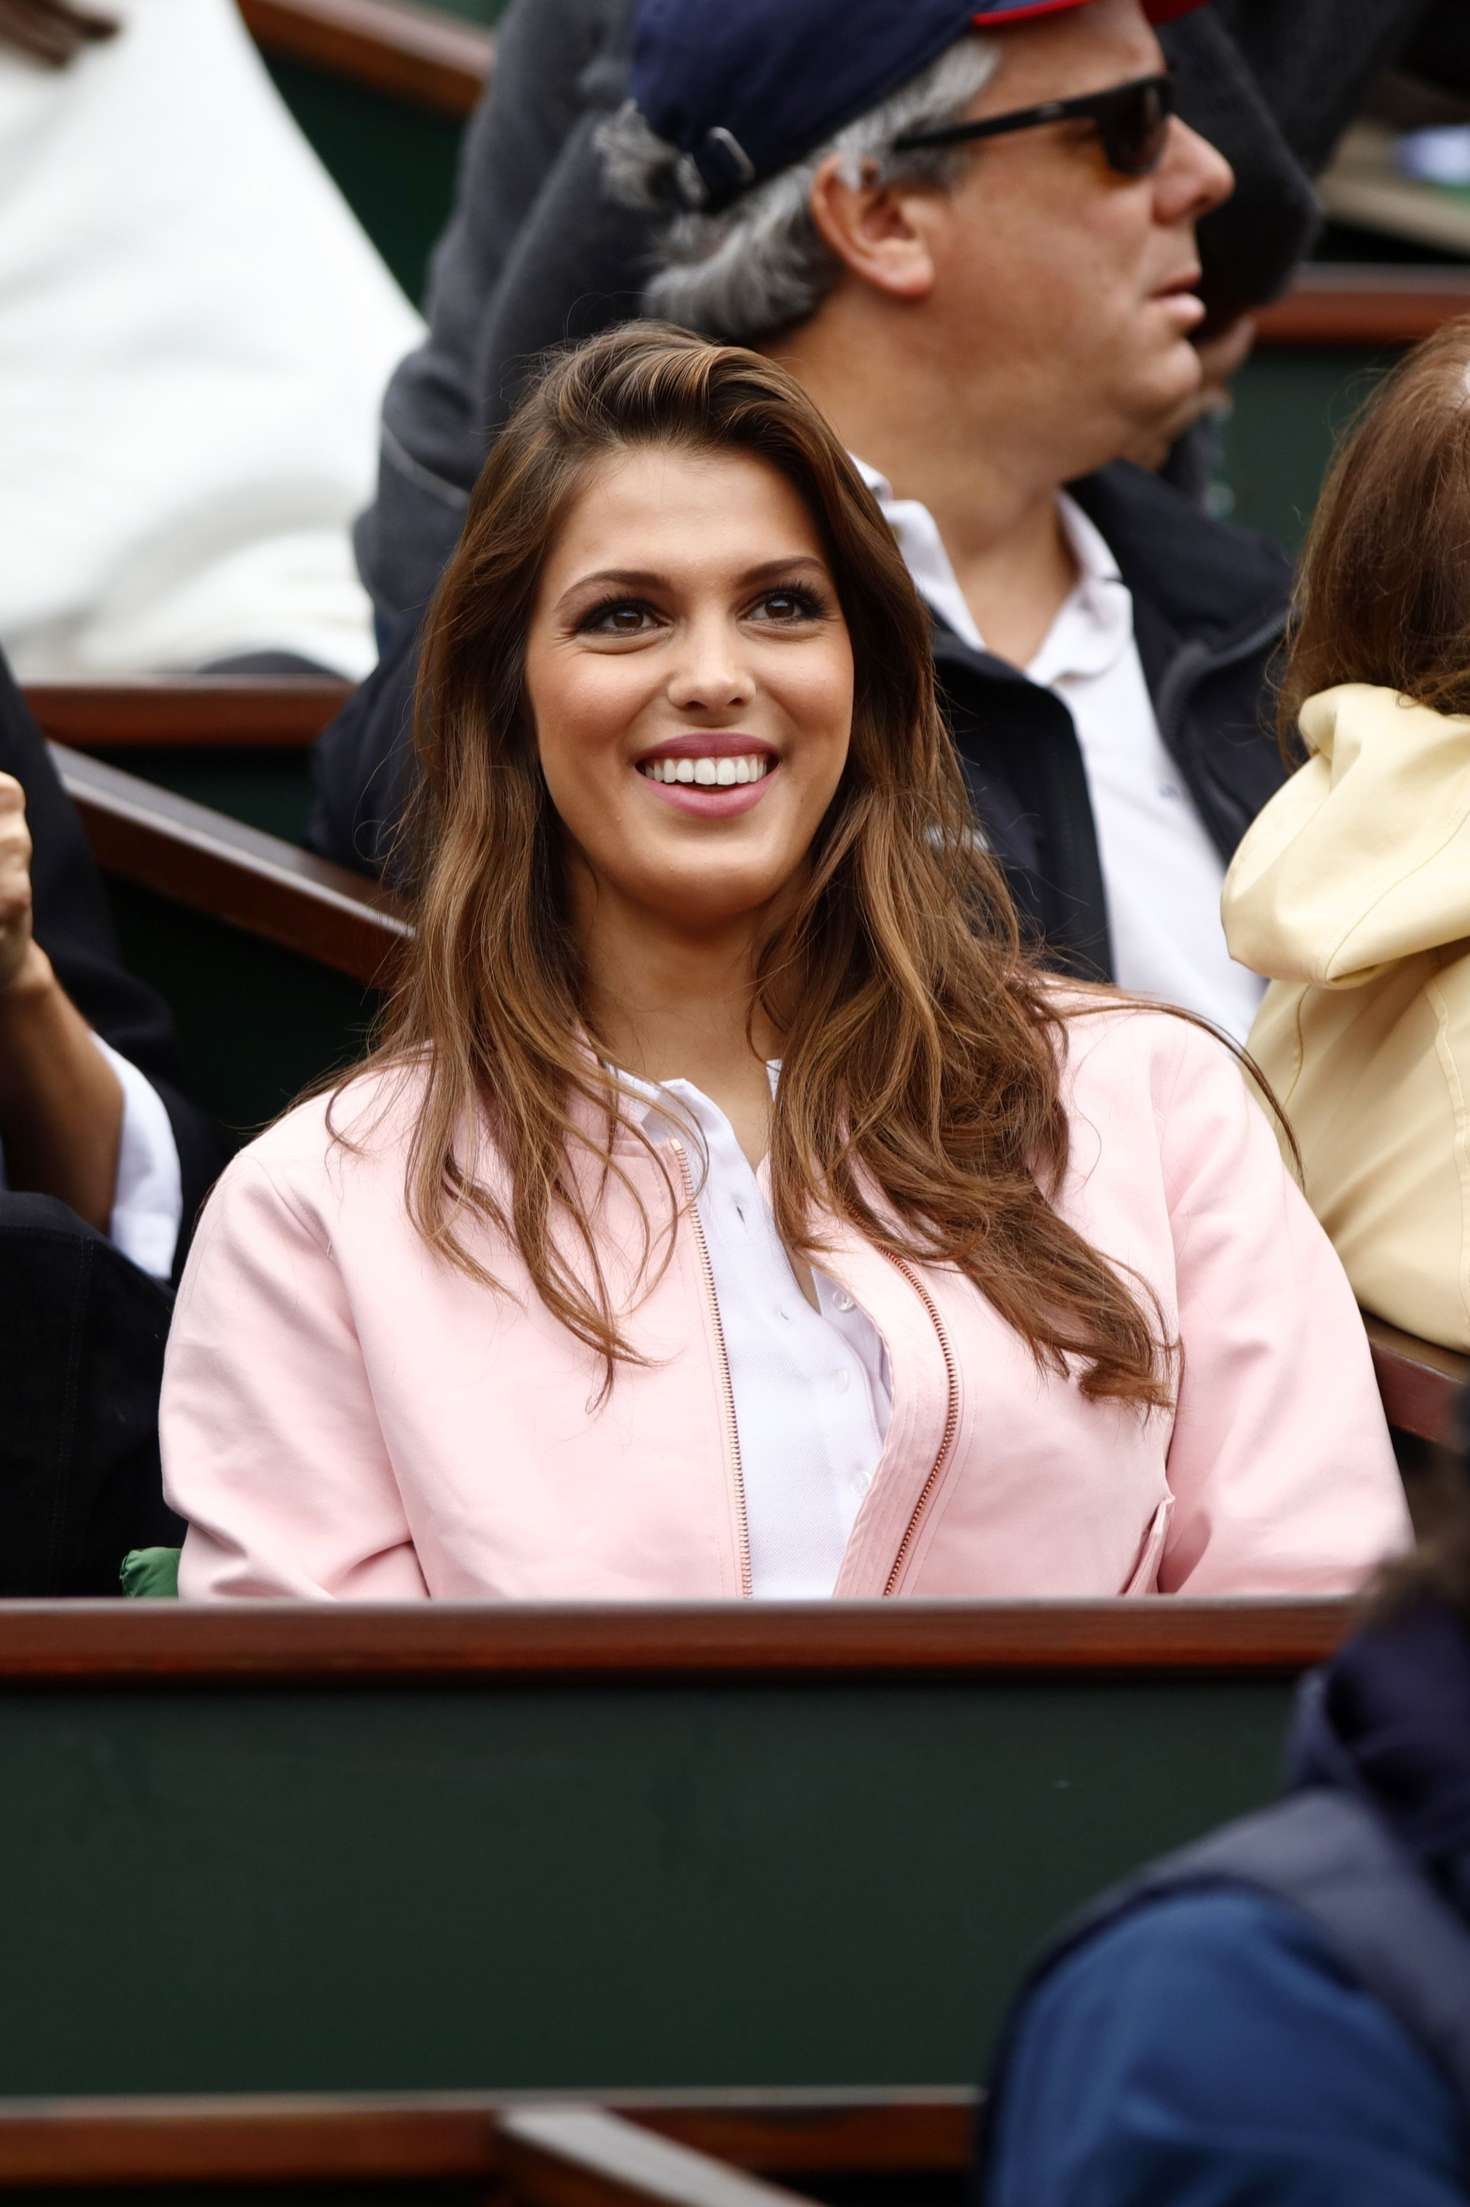 Iris Mittenaere Miss France 2016 at Rolan Garros 2016 in Franve